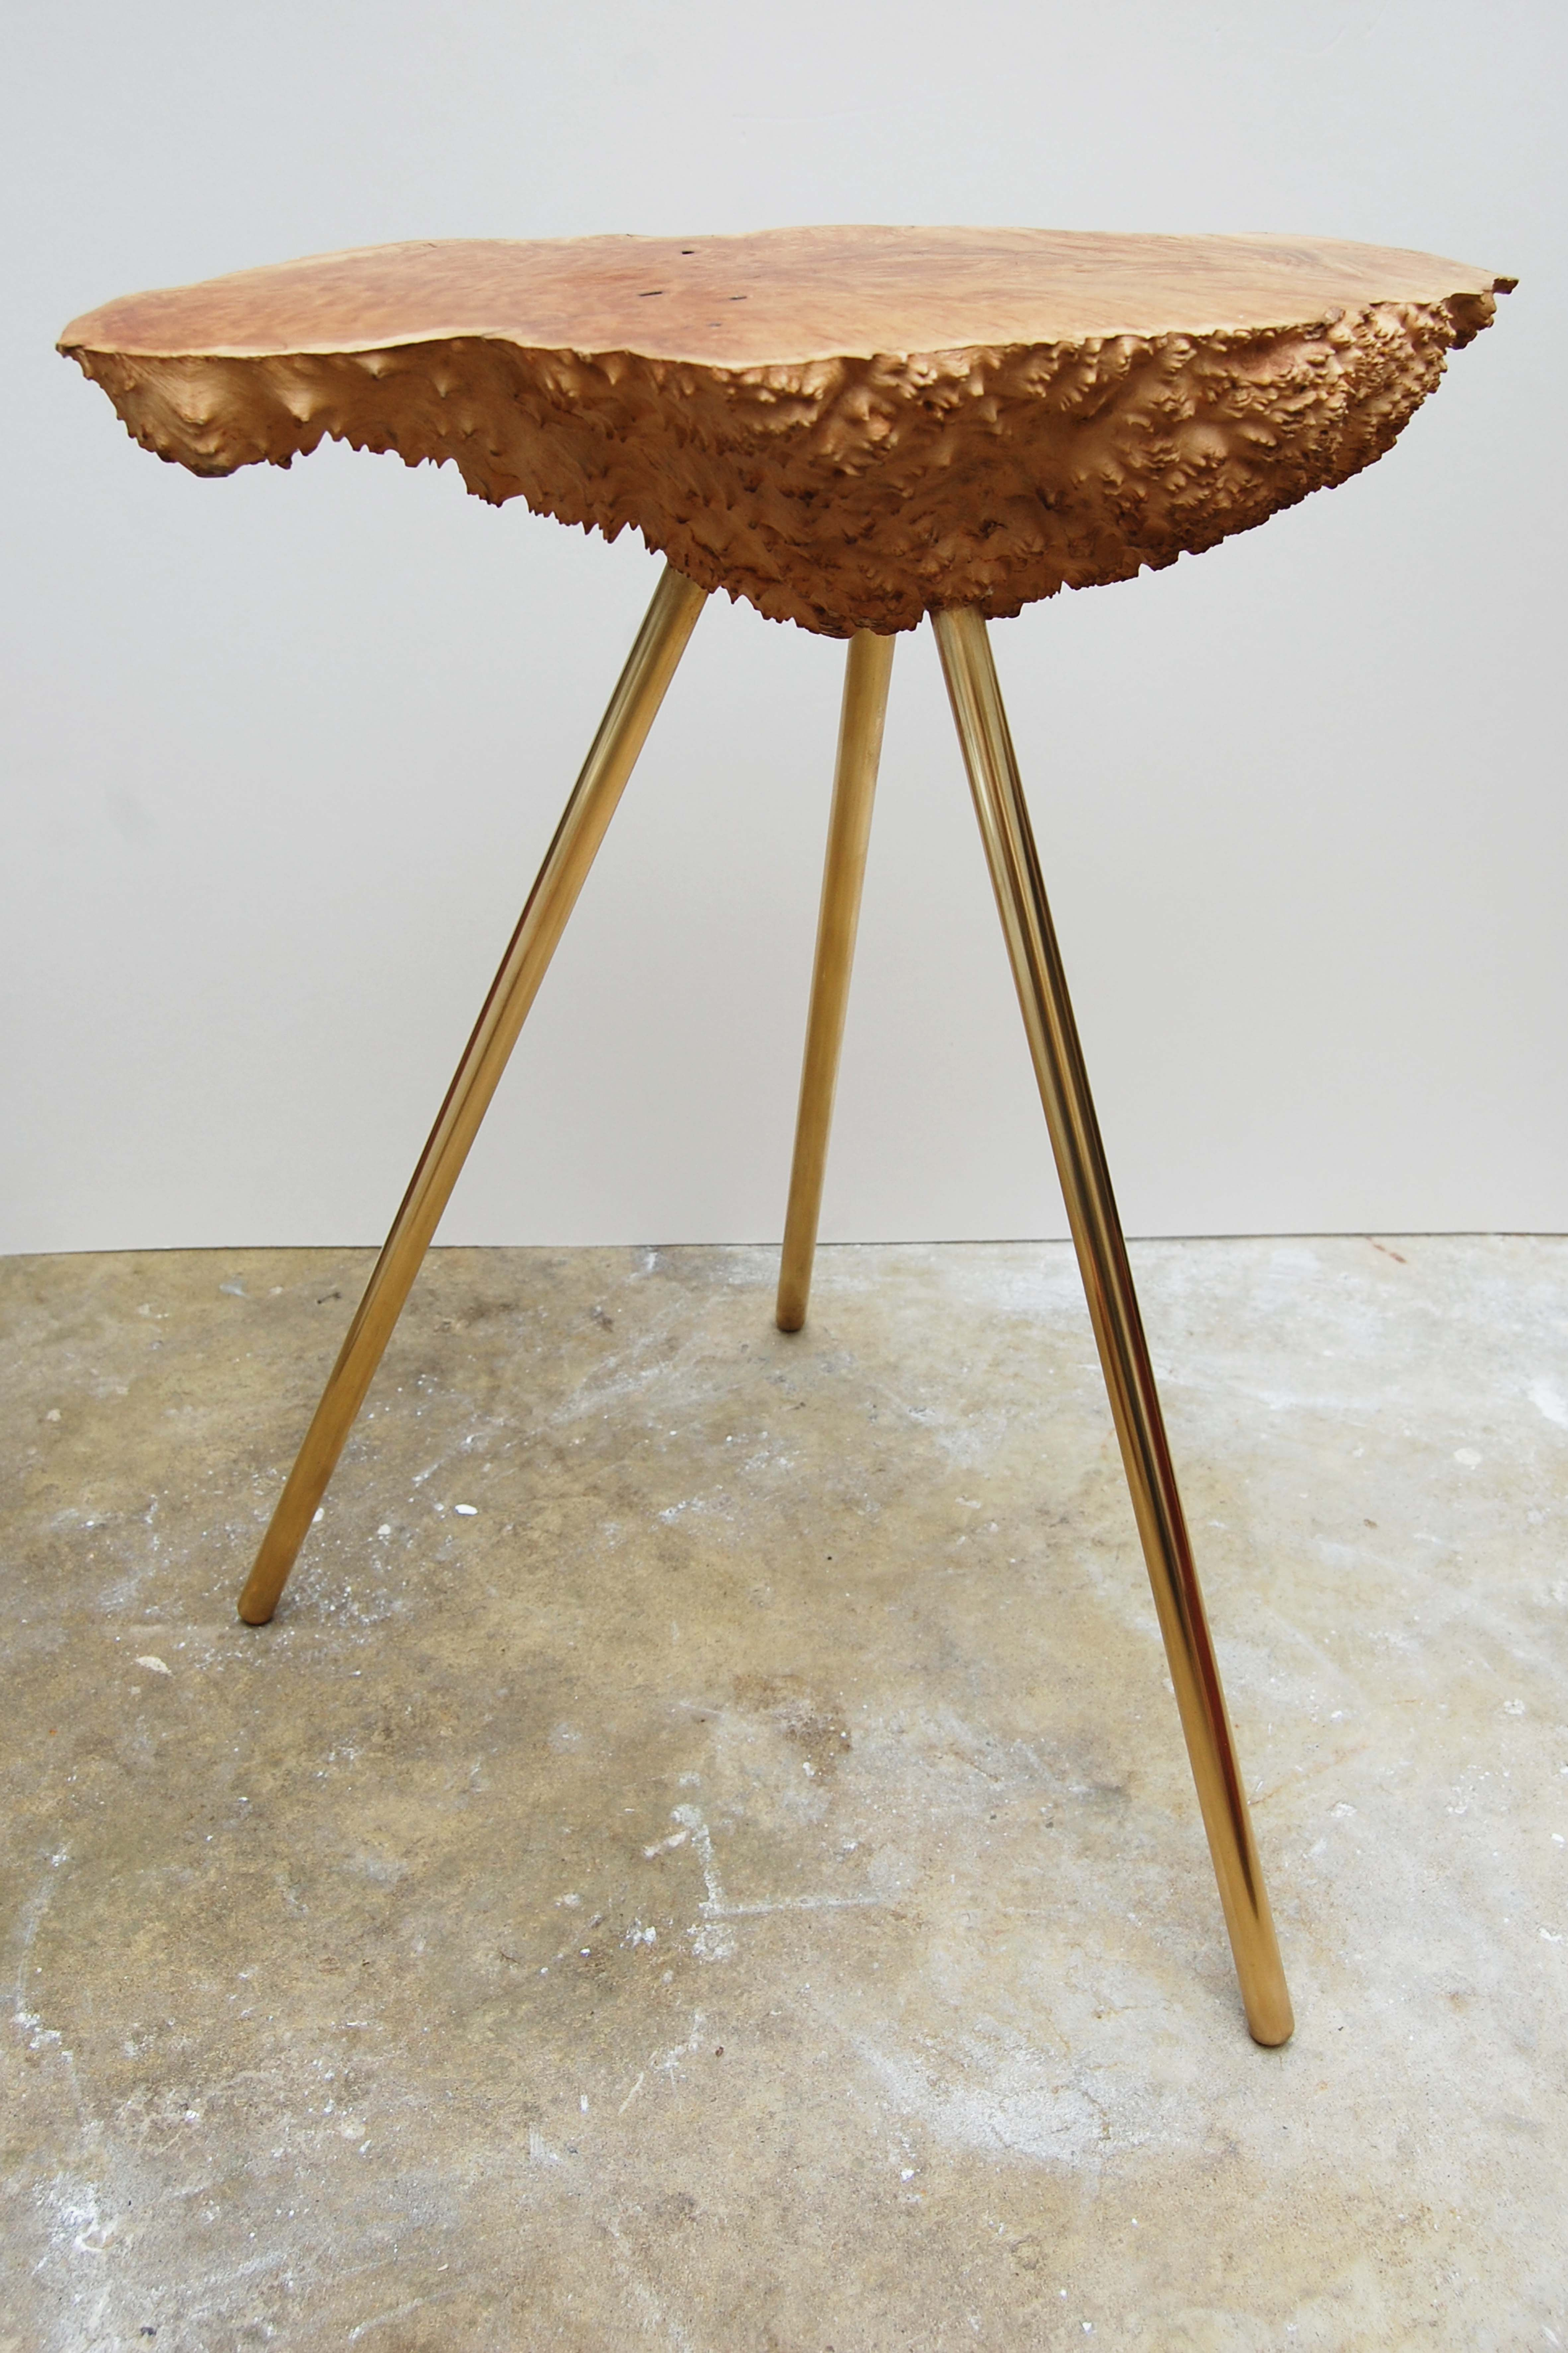 Piers Saxby Candy Studio   Small Burr Wood Table